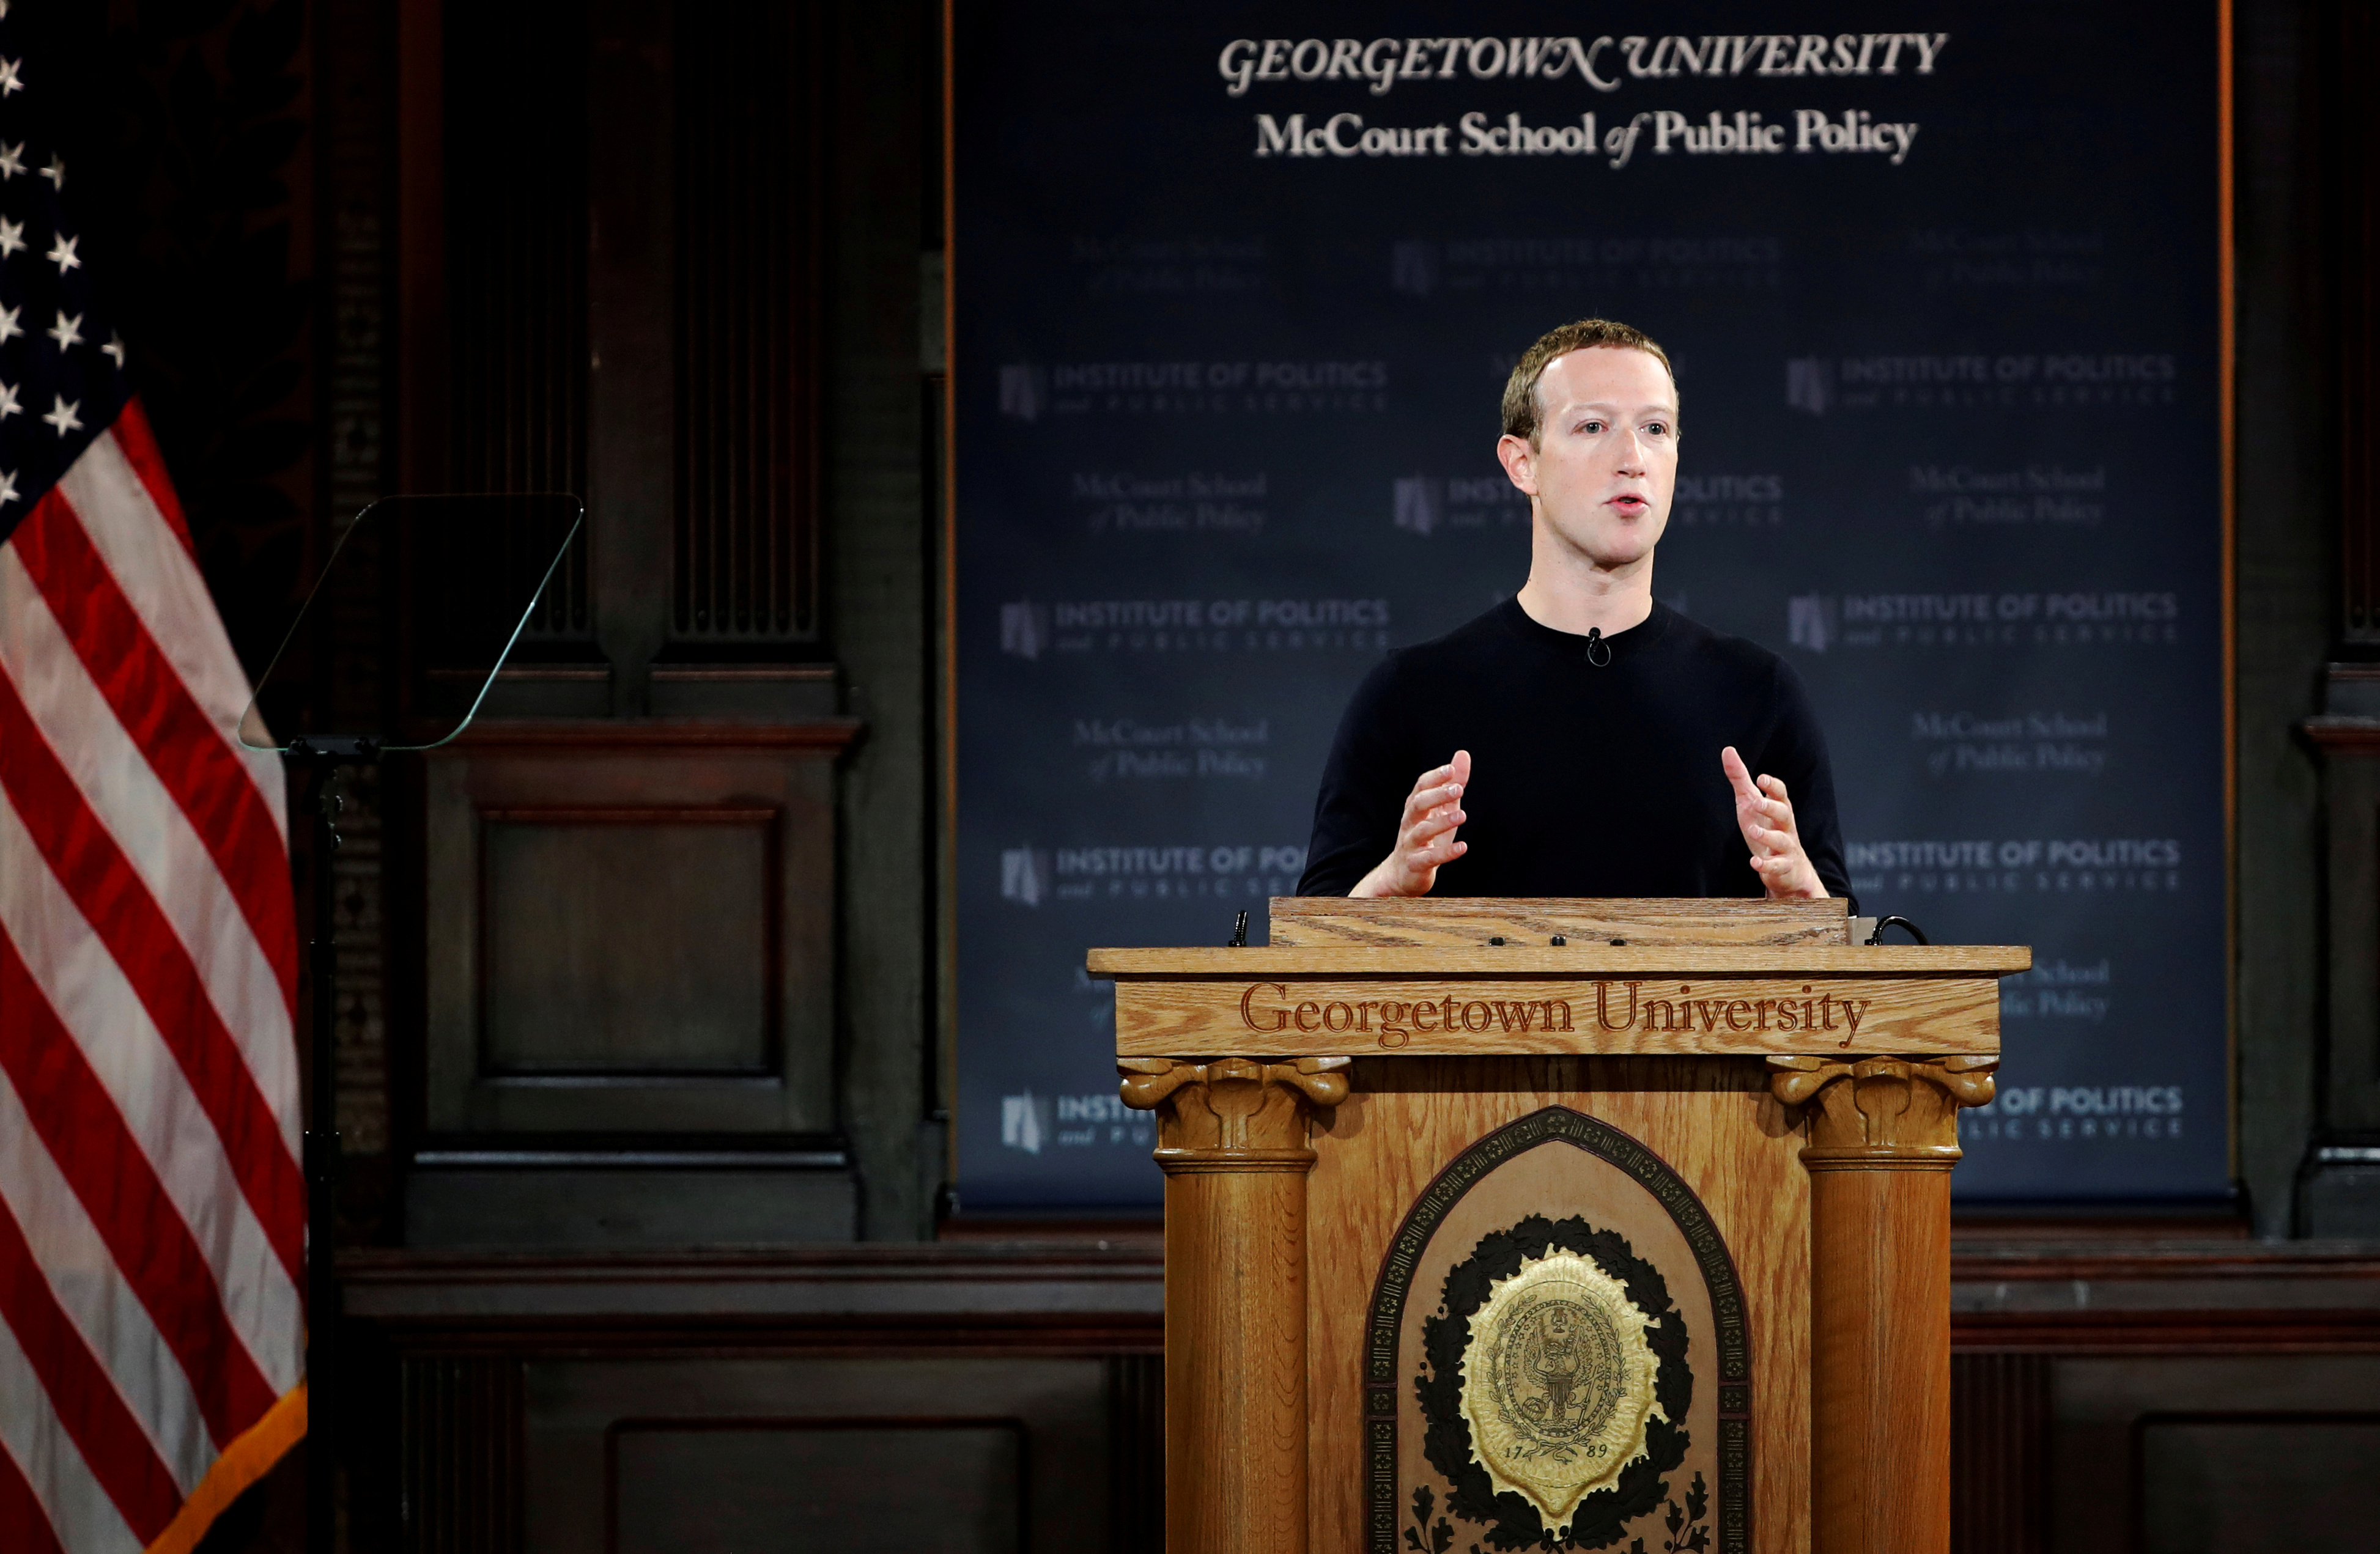 """Facebook Chairman and CEO Mark Zuckerberg addresses the audience on """"the challenges of protecting free speech while combating hate speech online, fighting misinformation, and political data privacy and security,"""" at a forum hosted by Georgetown University's Institute of Politics and Public Service (GU Politics) and the McCourt School of Public Policy in Washington, U.S., October 17, 2019. REUTERS/Carlos Jasso"""